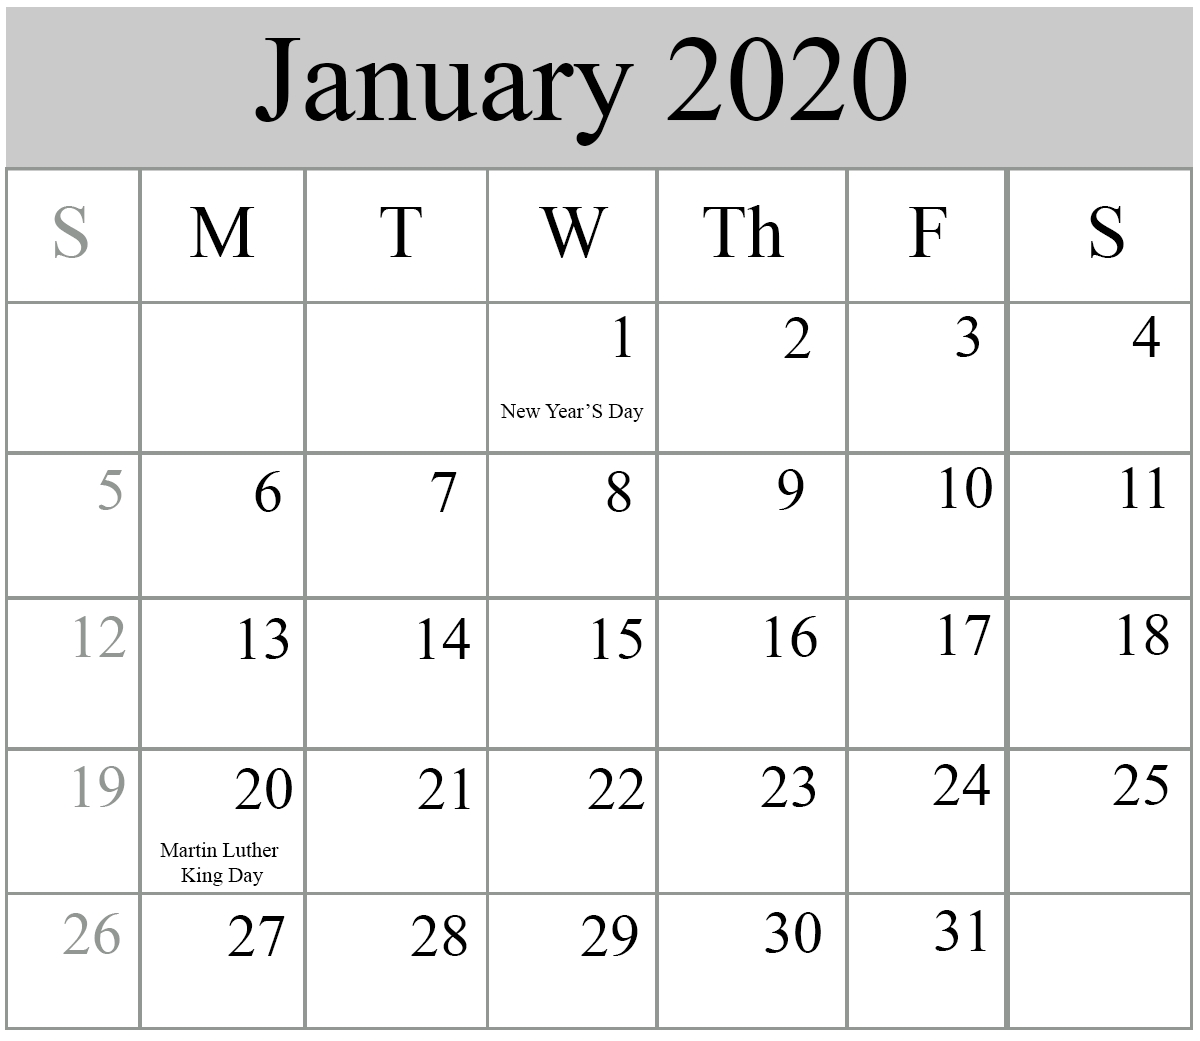 Free Blank January 2020 Calendar Printable In Pdf, Word-January 2020 Vertical Calendar